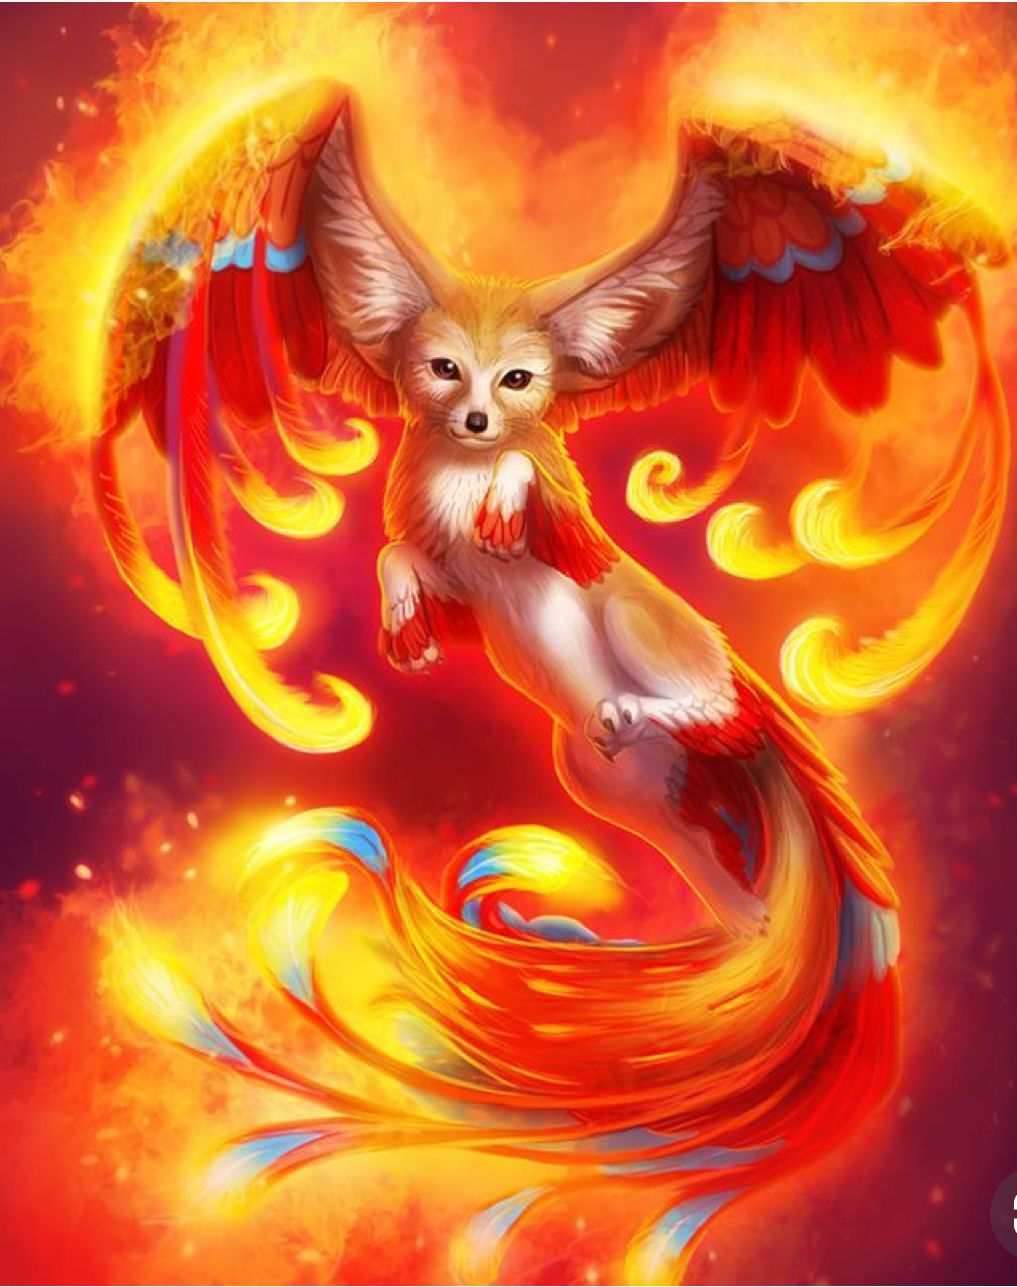 Fire Wolf Cute Cute Fantasy Creatures Mythical Creatures Art Mystical Animals